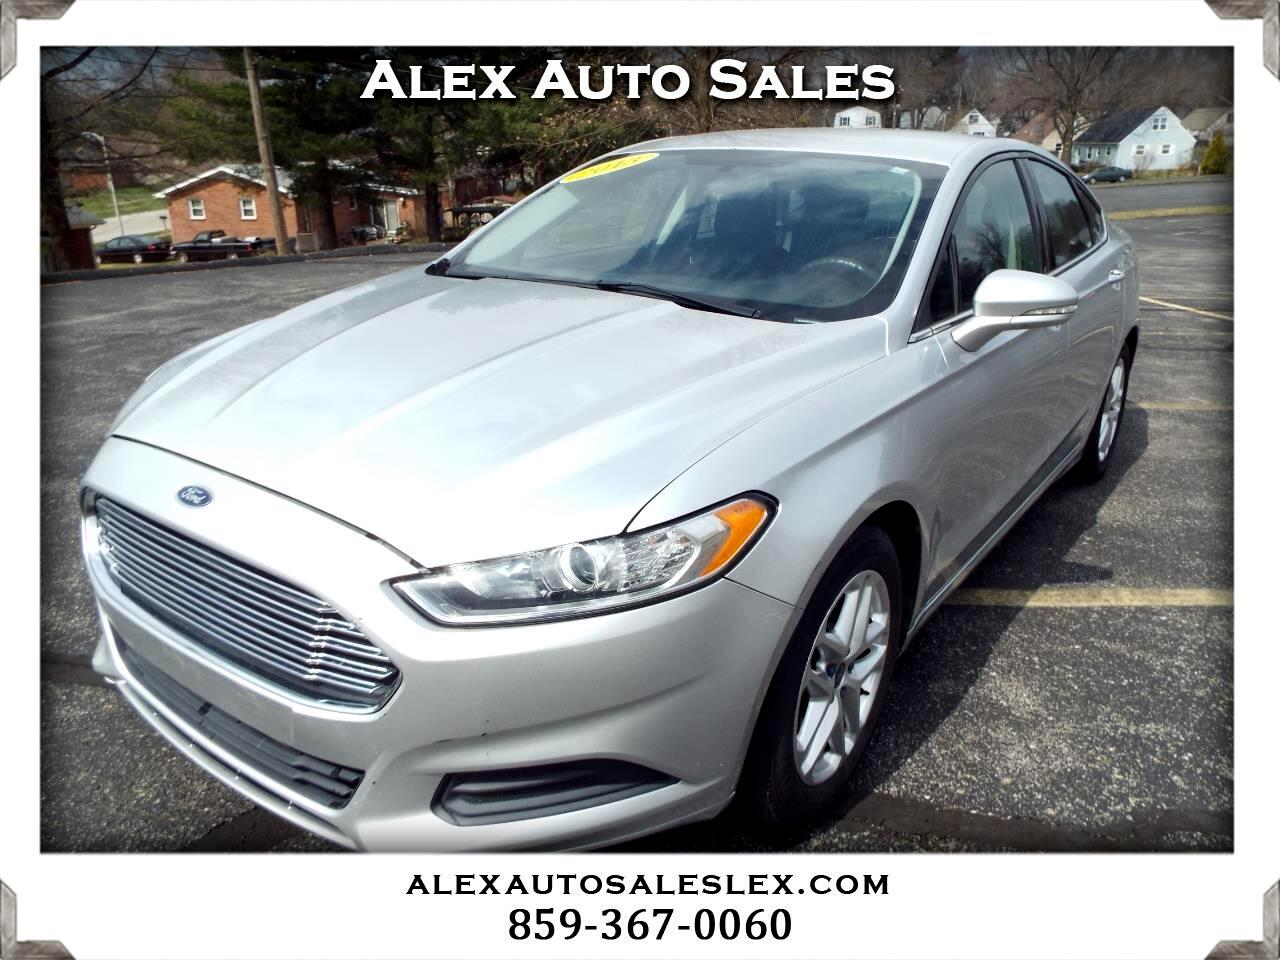 Buy Here Pay Here Lexington Ky >> Buy Here Pay Here 2013 Ford Fusion For Sale In Lexington Ky 40505